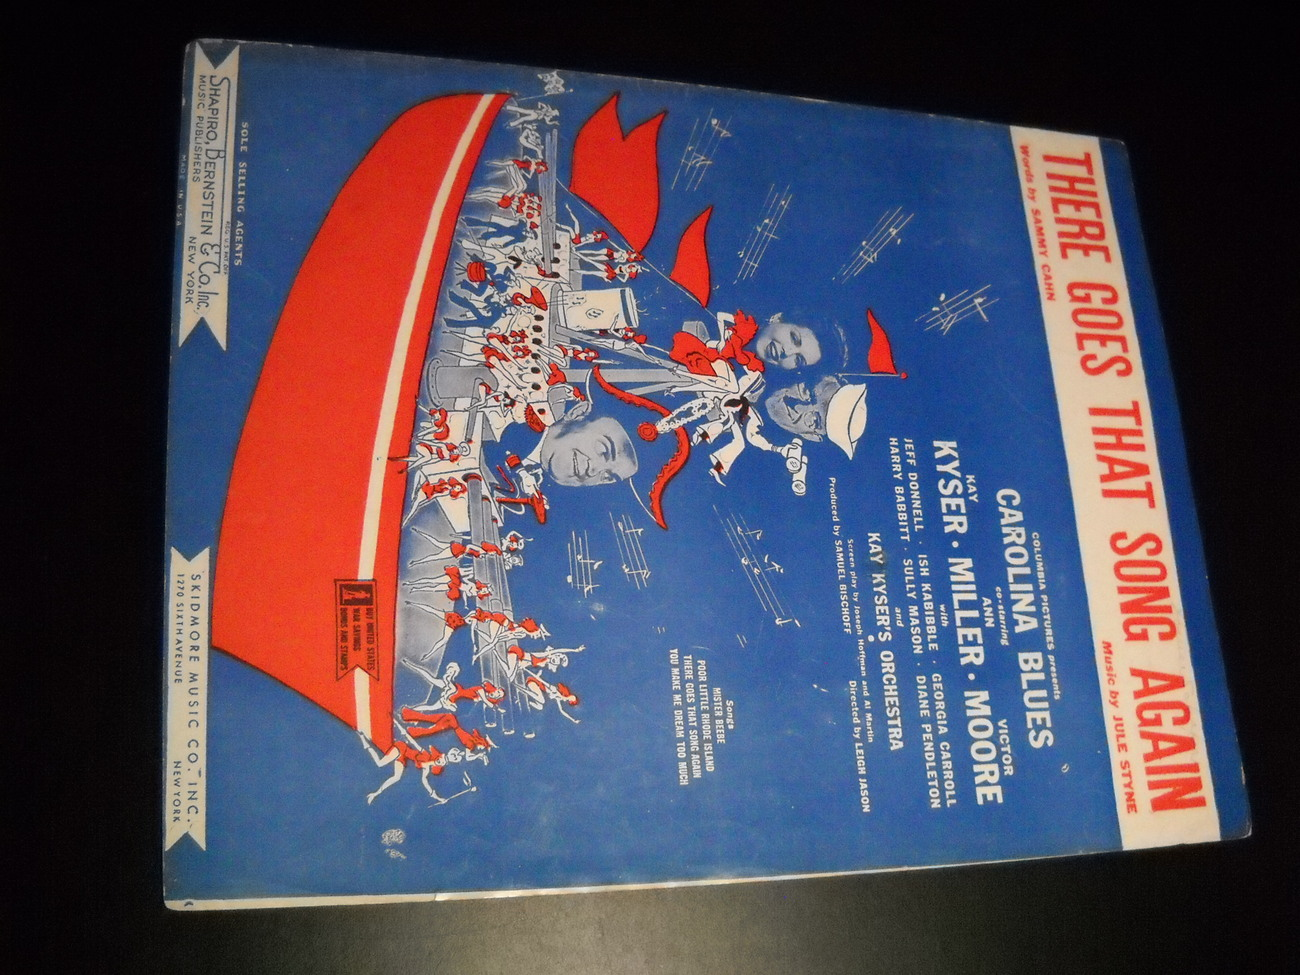 Sheet_music_there_goes_that_song_again_carolina_blues_kyser_miller_1944_skidmore_01